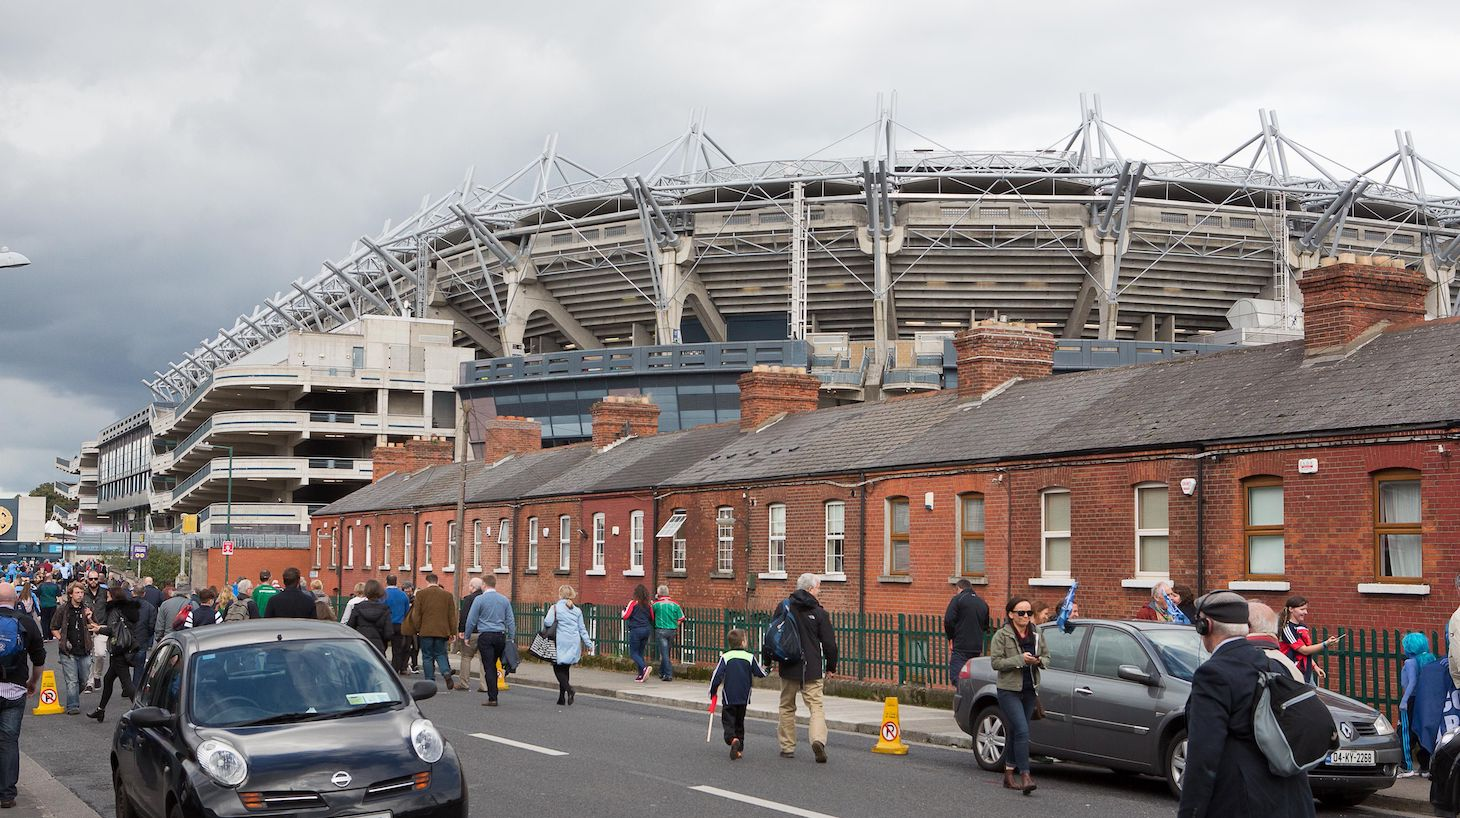 The biggest crowd in Europe on Saturday will not be watching detached professionals kissing the badge of their latest football team, but at the All-Ireland Gaelic football final. Two amateur teams, Dublin and Mayo, will attempt to win the coveted All-Ireland trophy for Gaelic football in a replay following a rare draw two weeks ago.